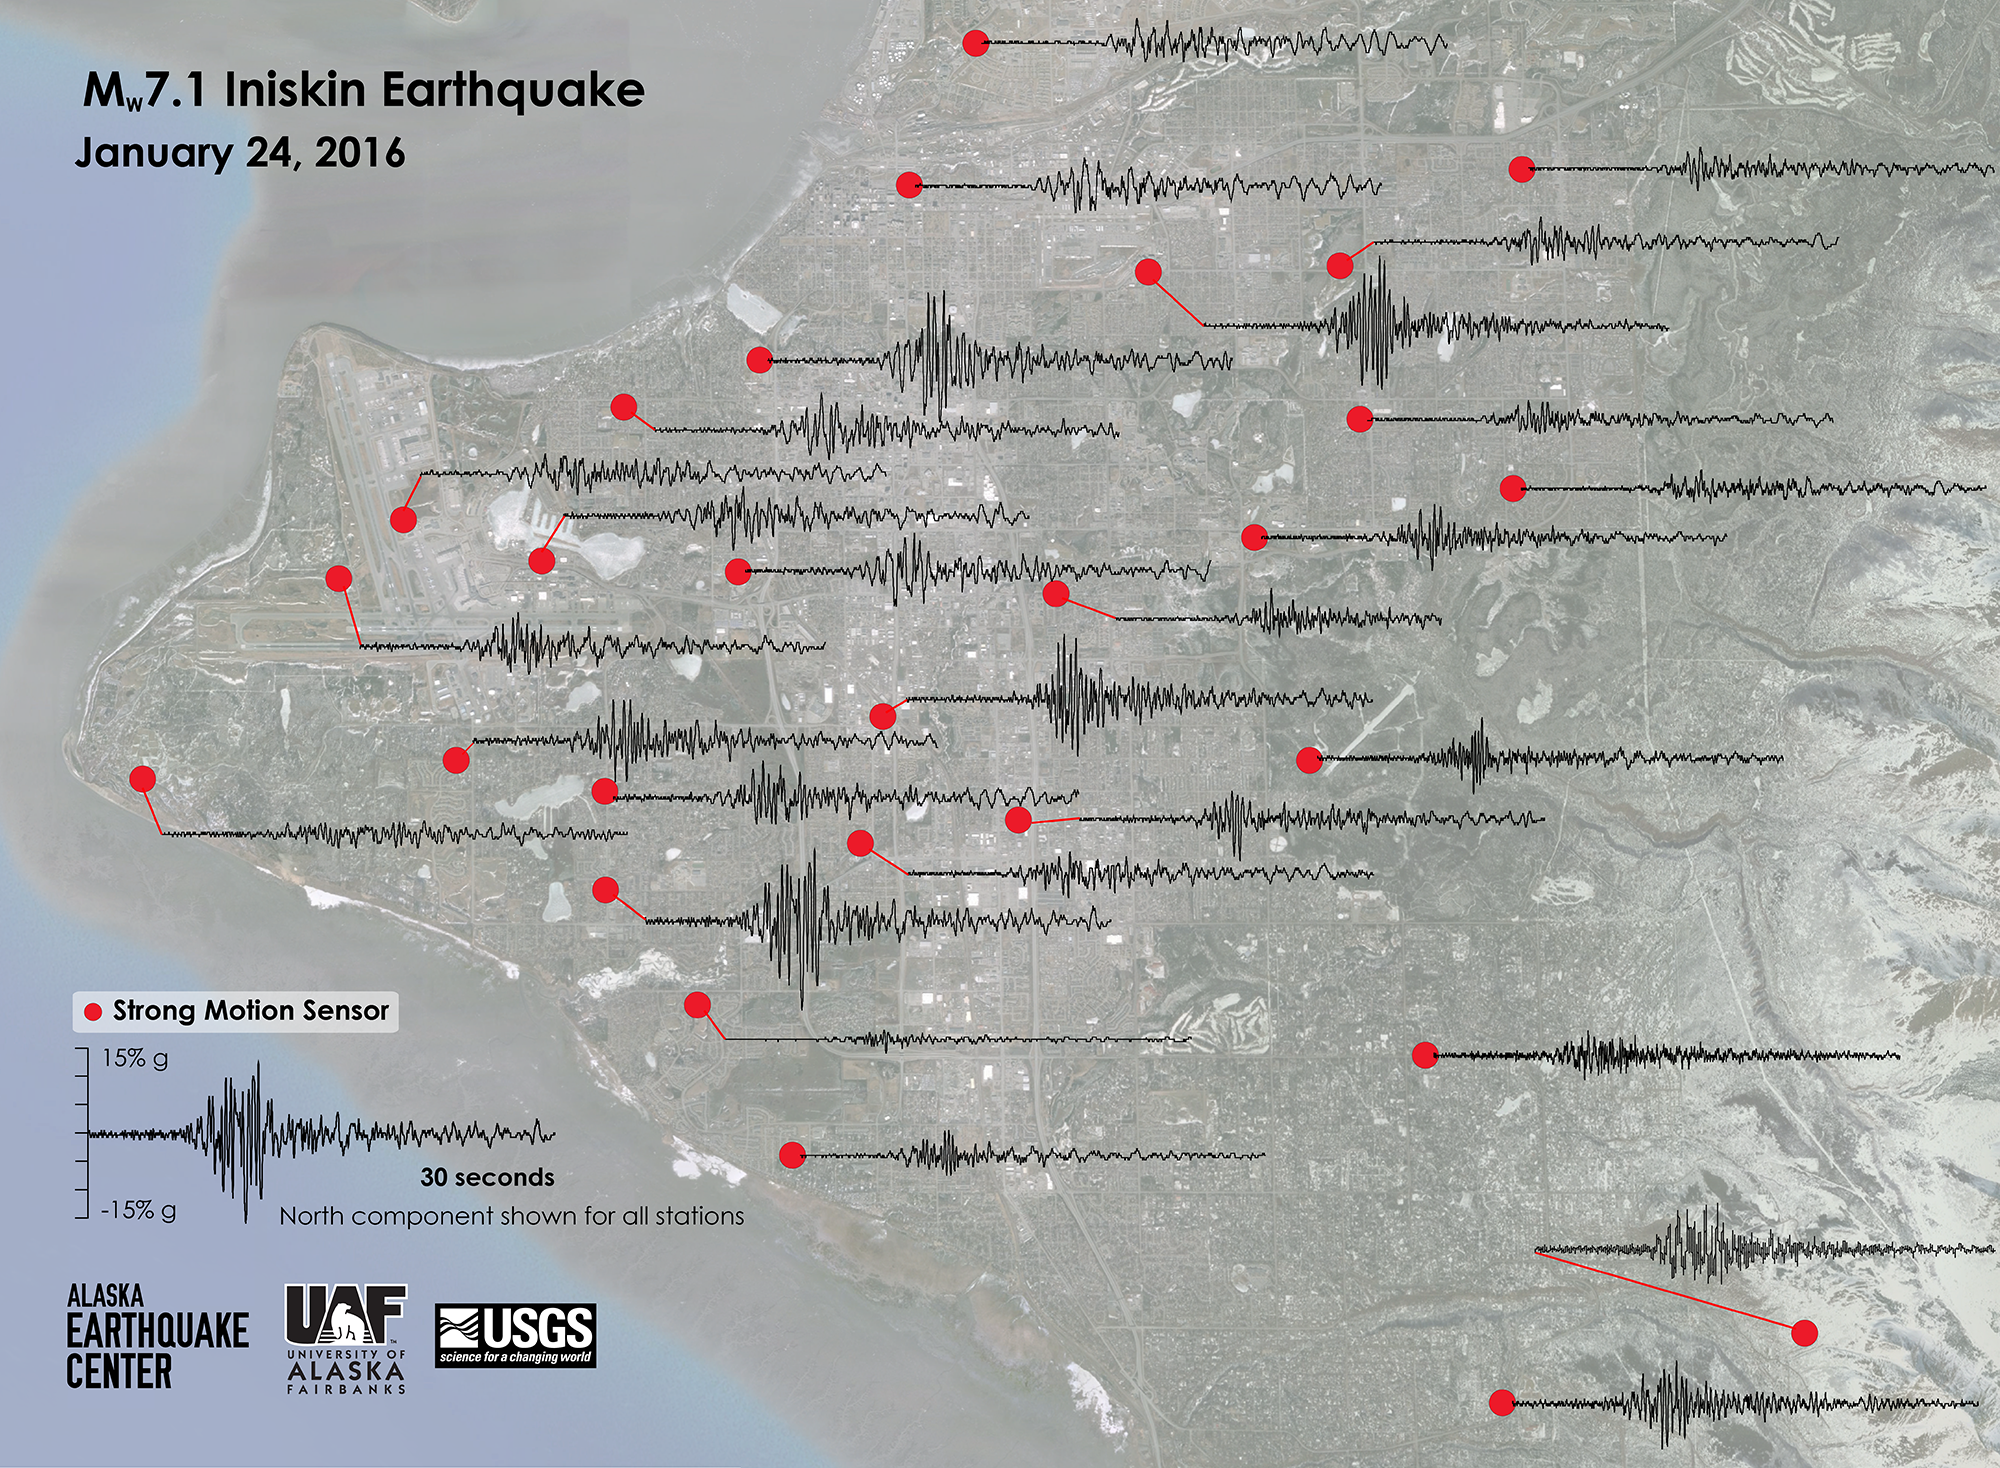 (Via Alaska Earthquake Center)